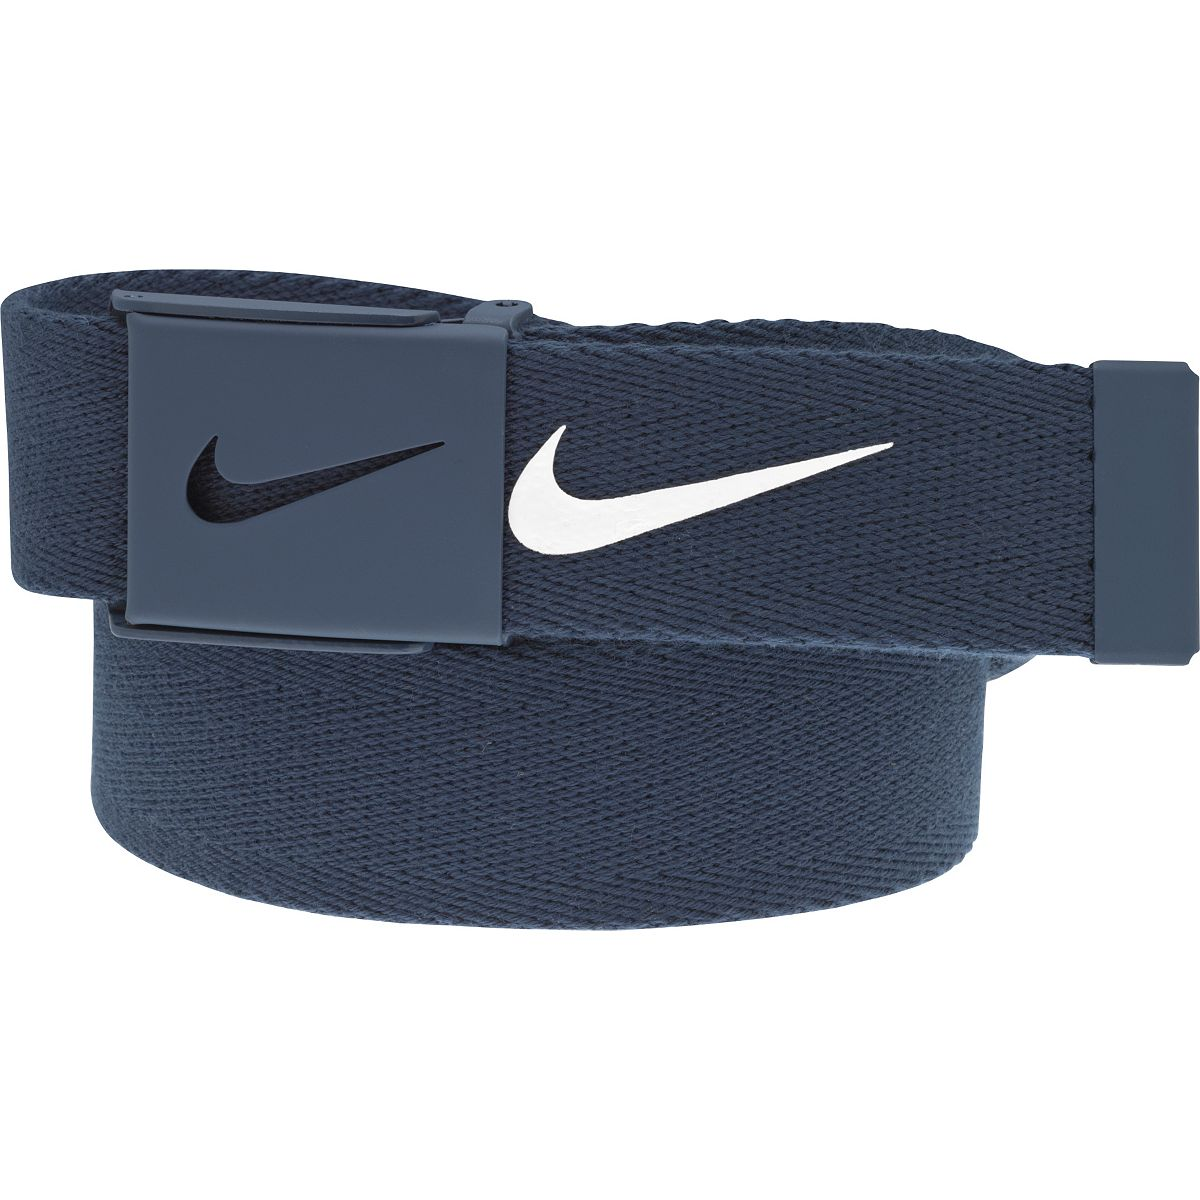 Nike Tech Essentials Web Belt - Navy